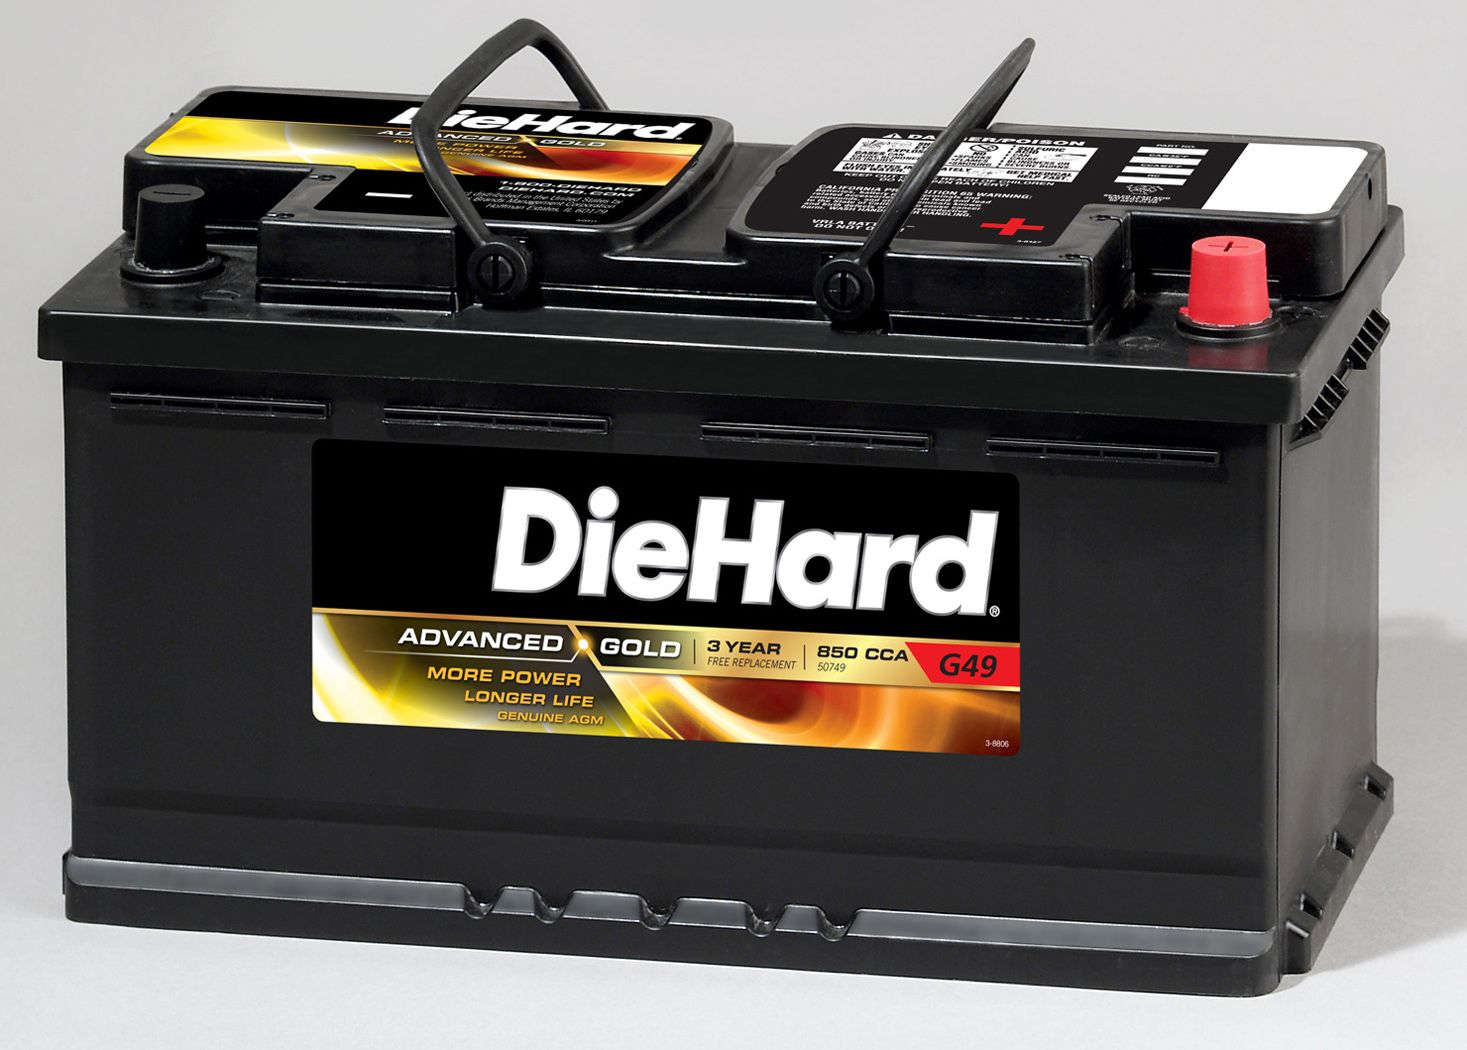 small resolution of diehard gold agm automotive battery group size ep 49 price with exchange